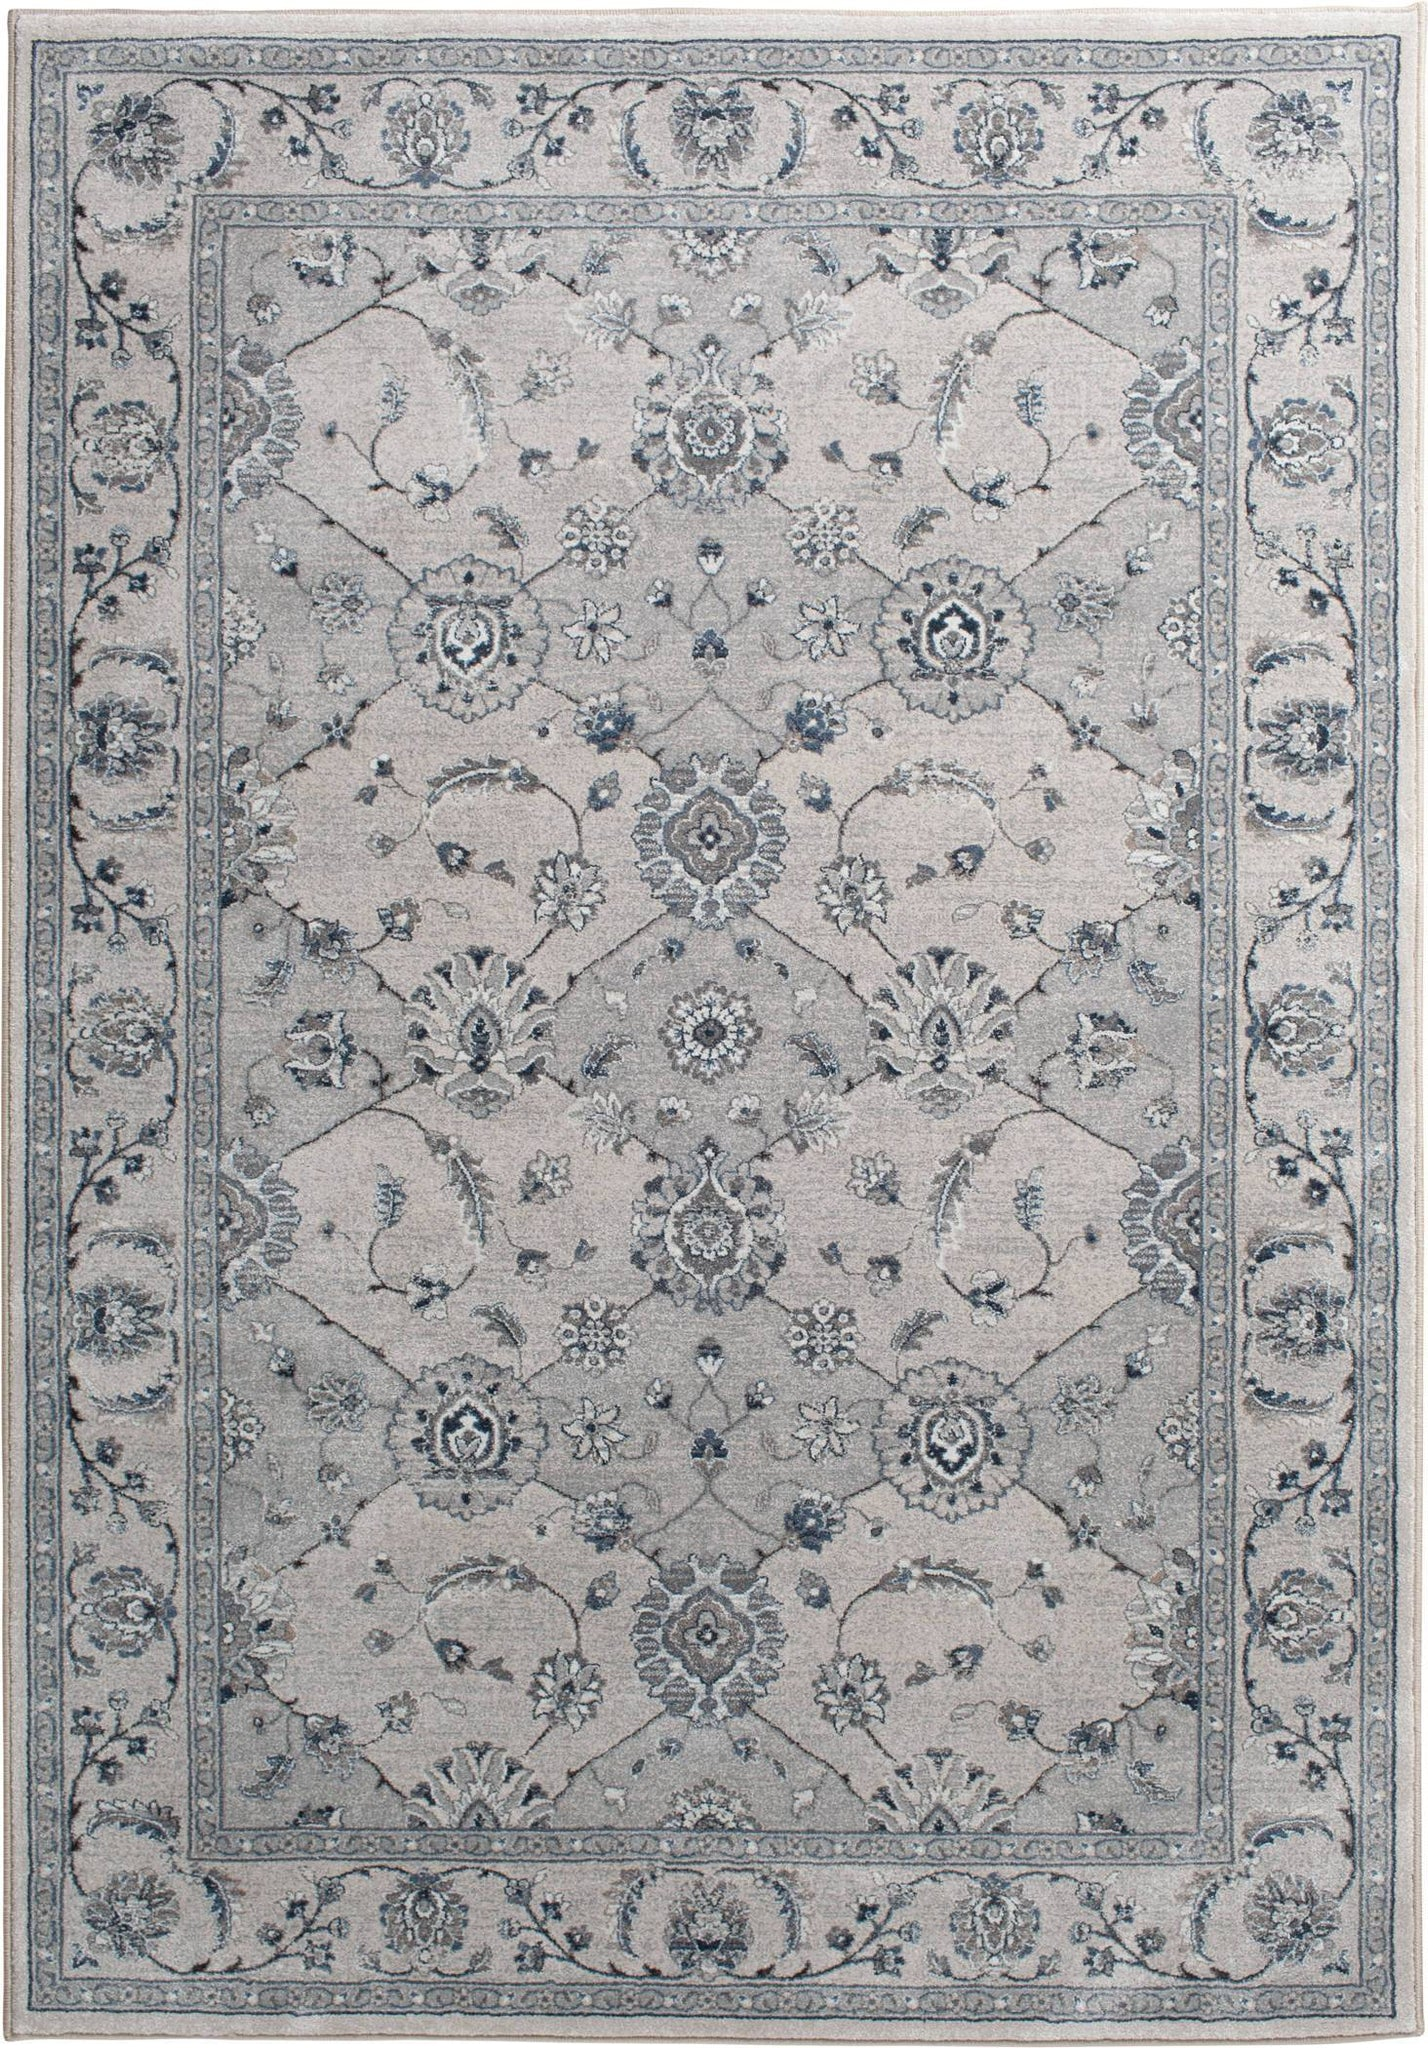 Rug Depot Home Area Rugs Traditions Area Rugs 2806 BCK Beige in 15 Sizes Made in USA